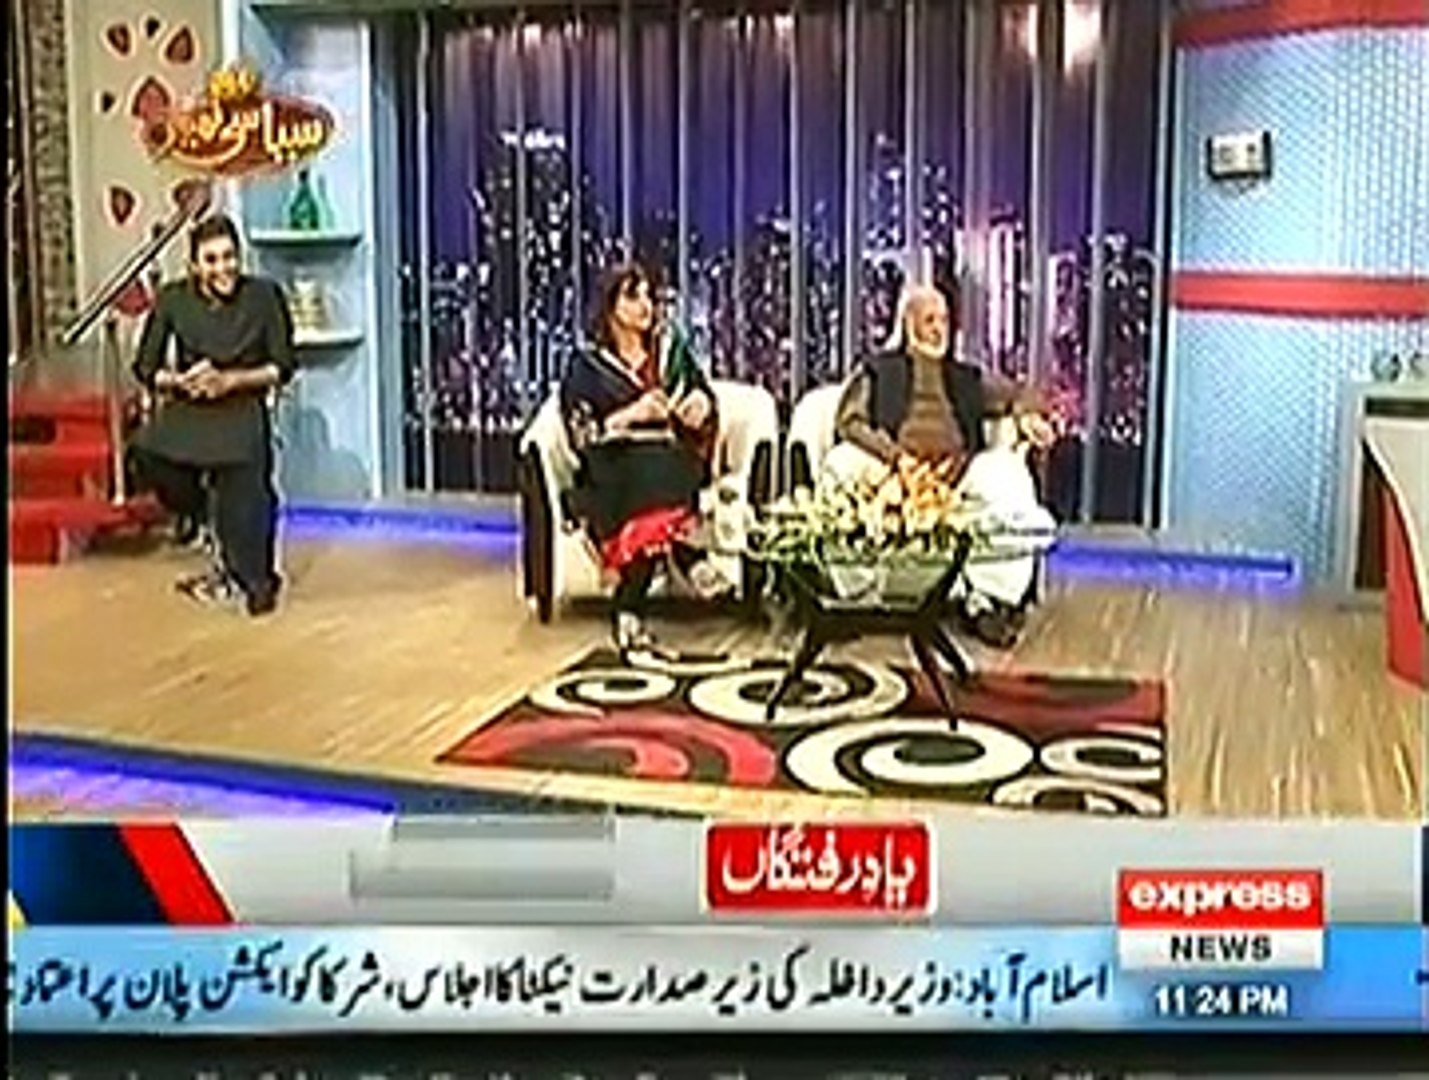 Syasi Theater ~ 31st December 2014 - Comedy Show - Live Pak News